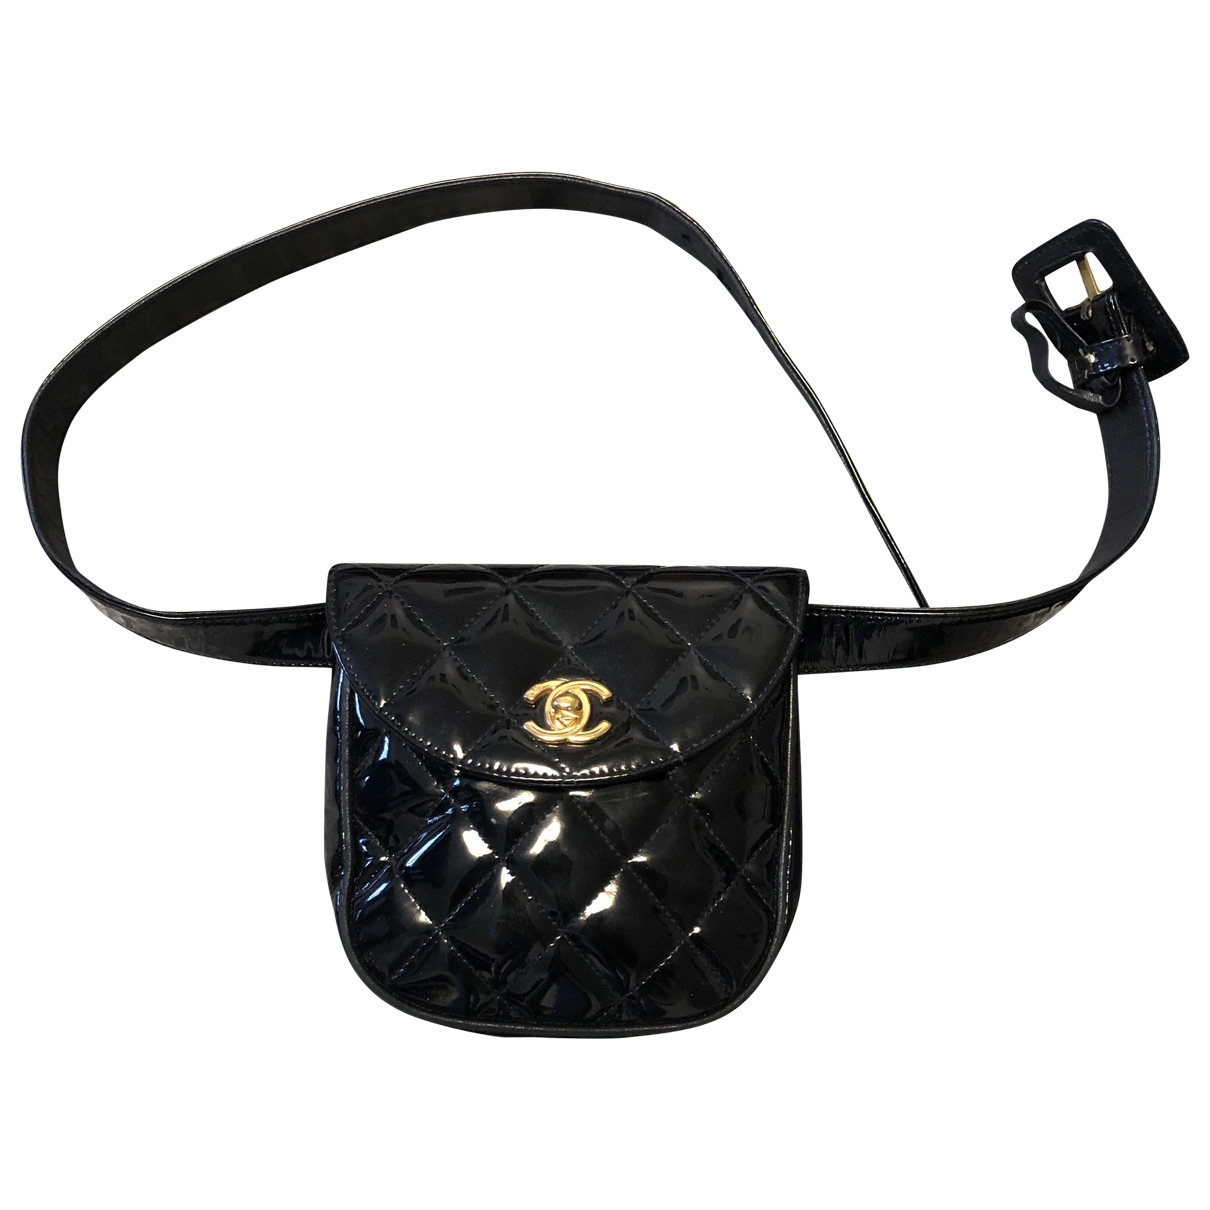 Chanel \N Black Patent leather Clutch bag for Women \N